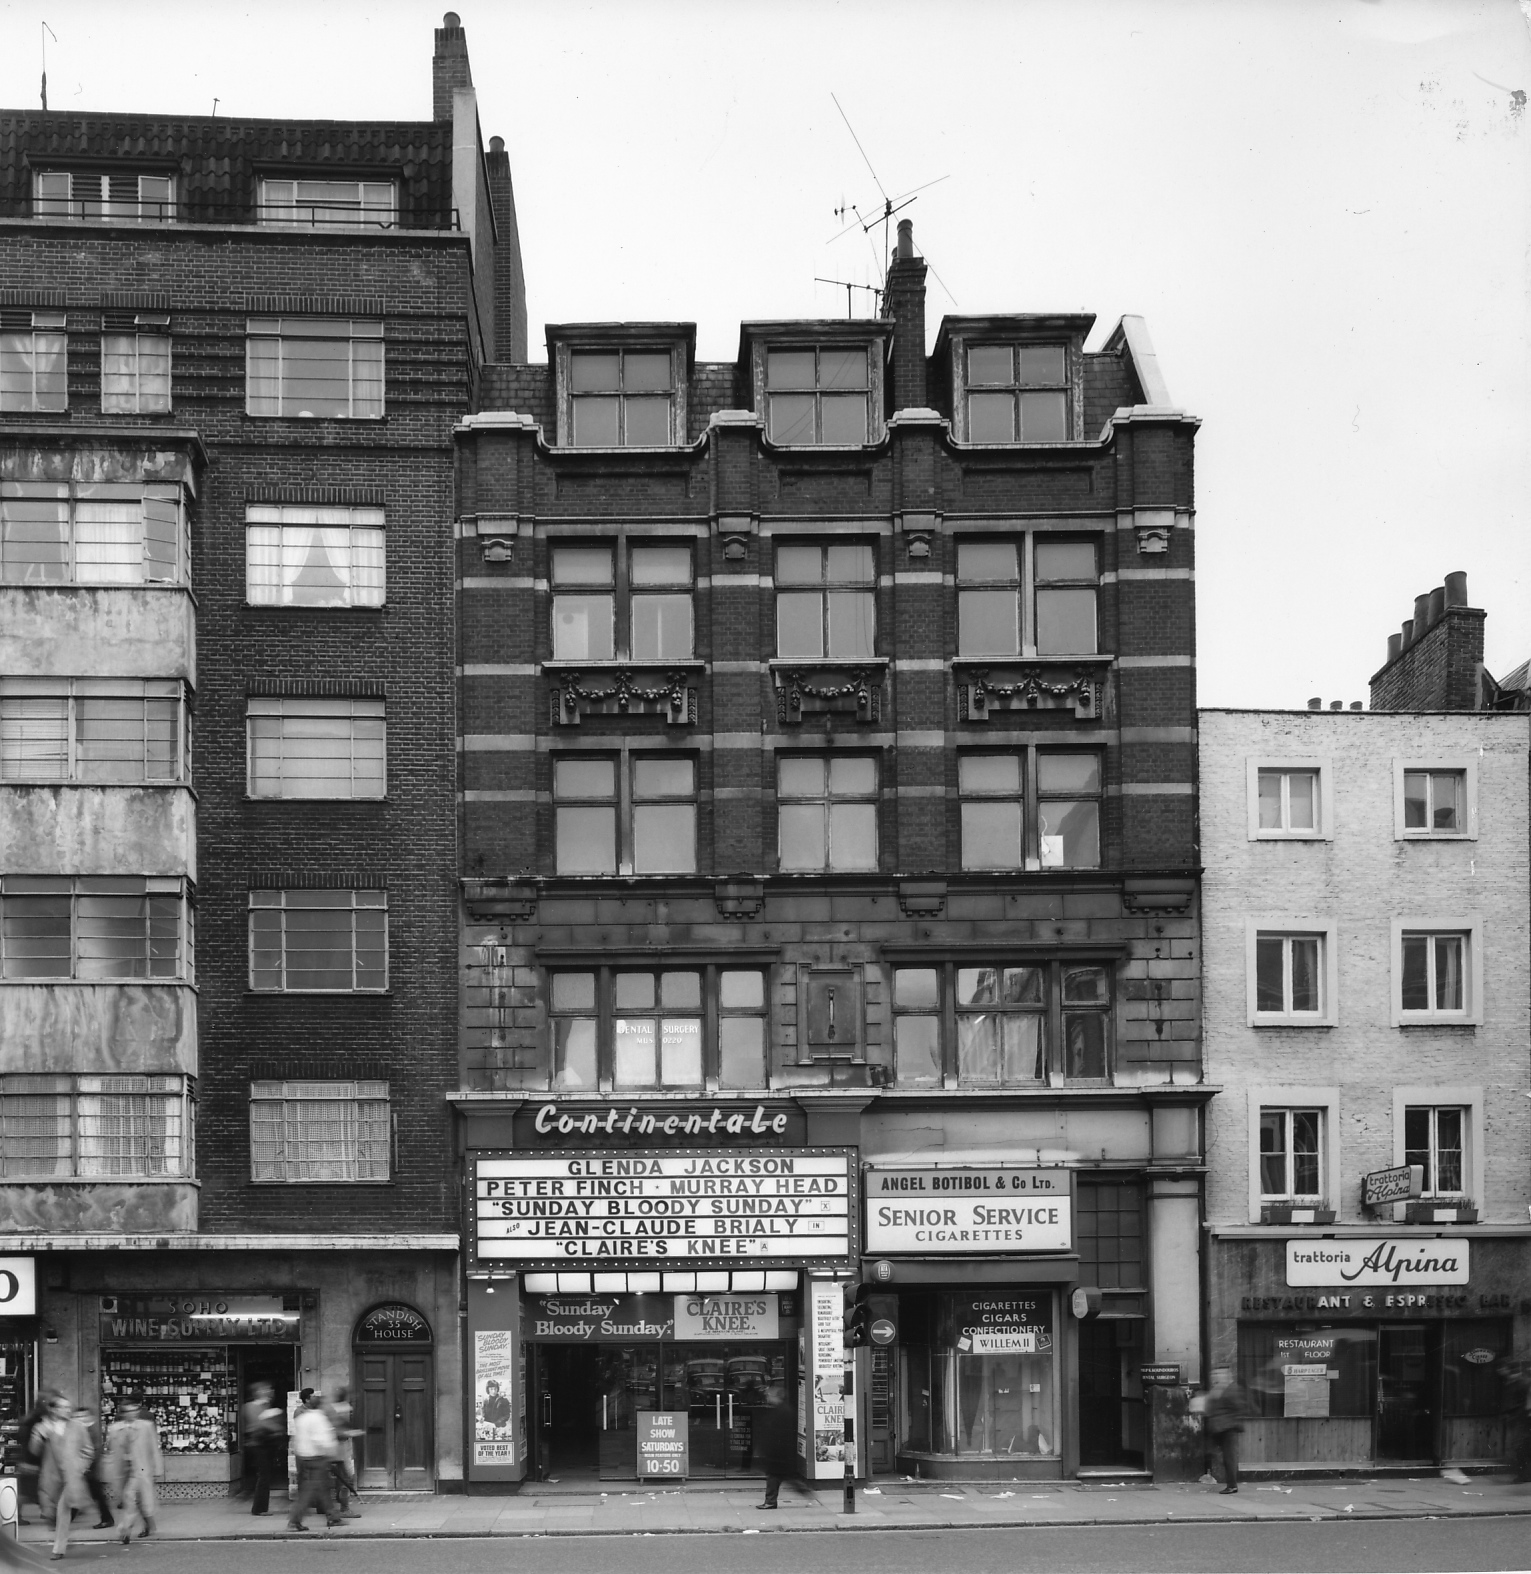 Tottenham: Tottenham Court Road Before Redevelopment In The 1970s